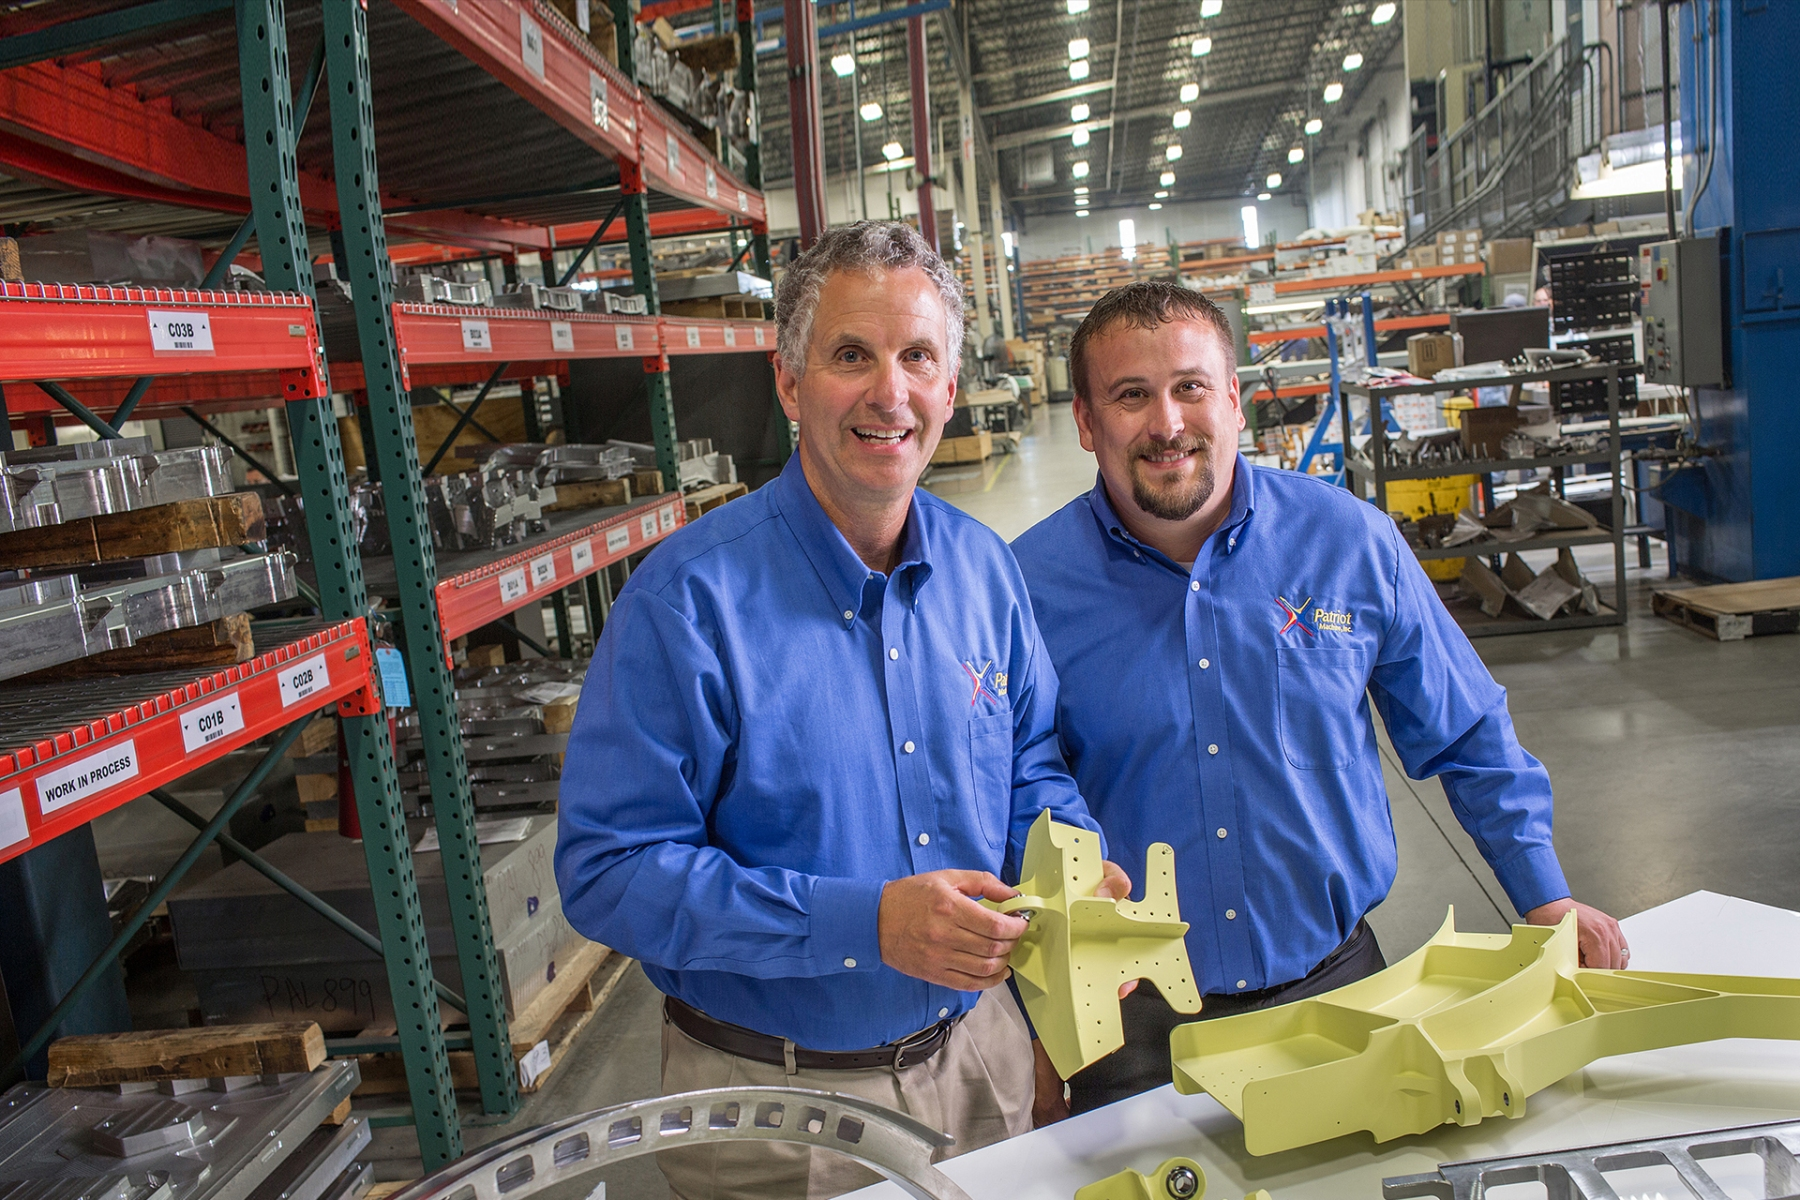 Two Patriot Machine associates on the shop floor, with some machined parts on a table in front.